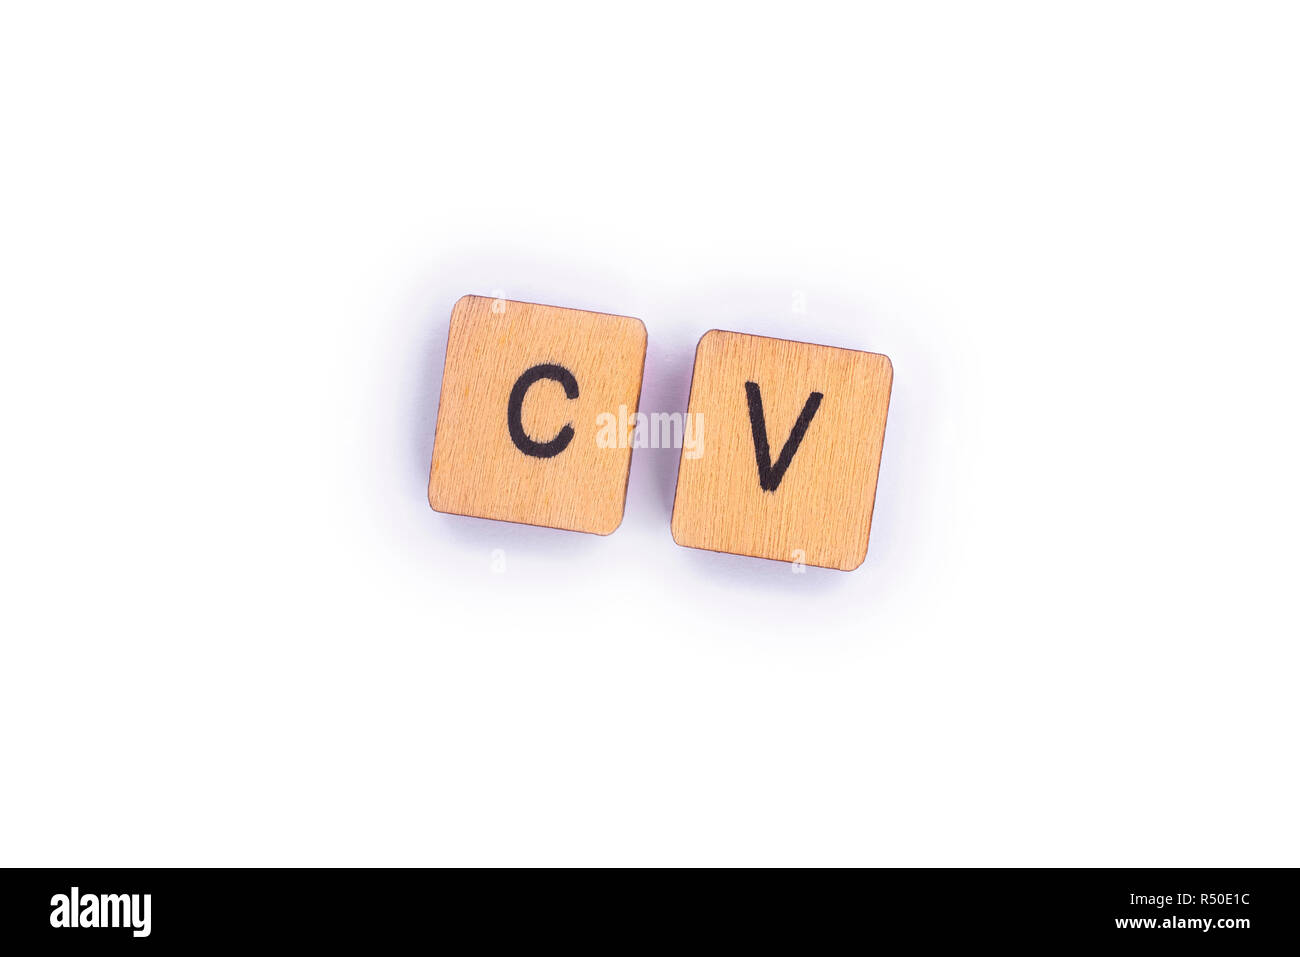 cv isolated stock photos  u0026 cv isolated stock images